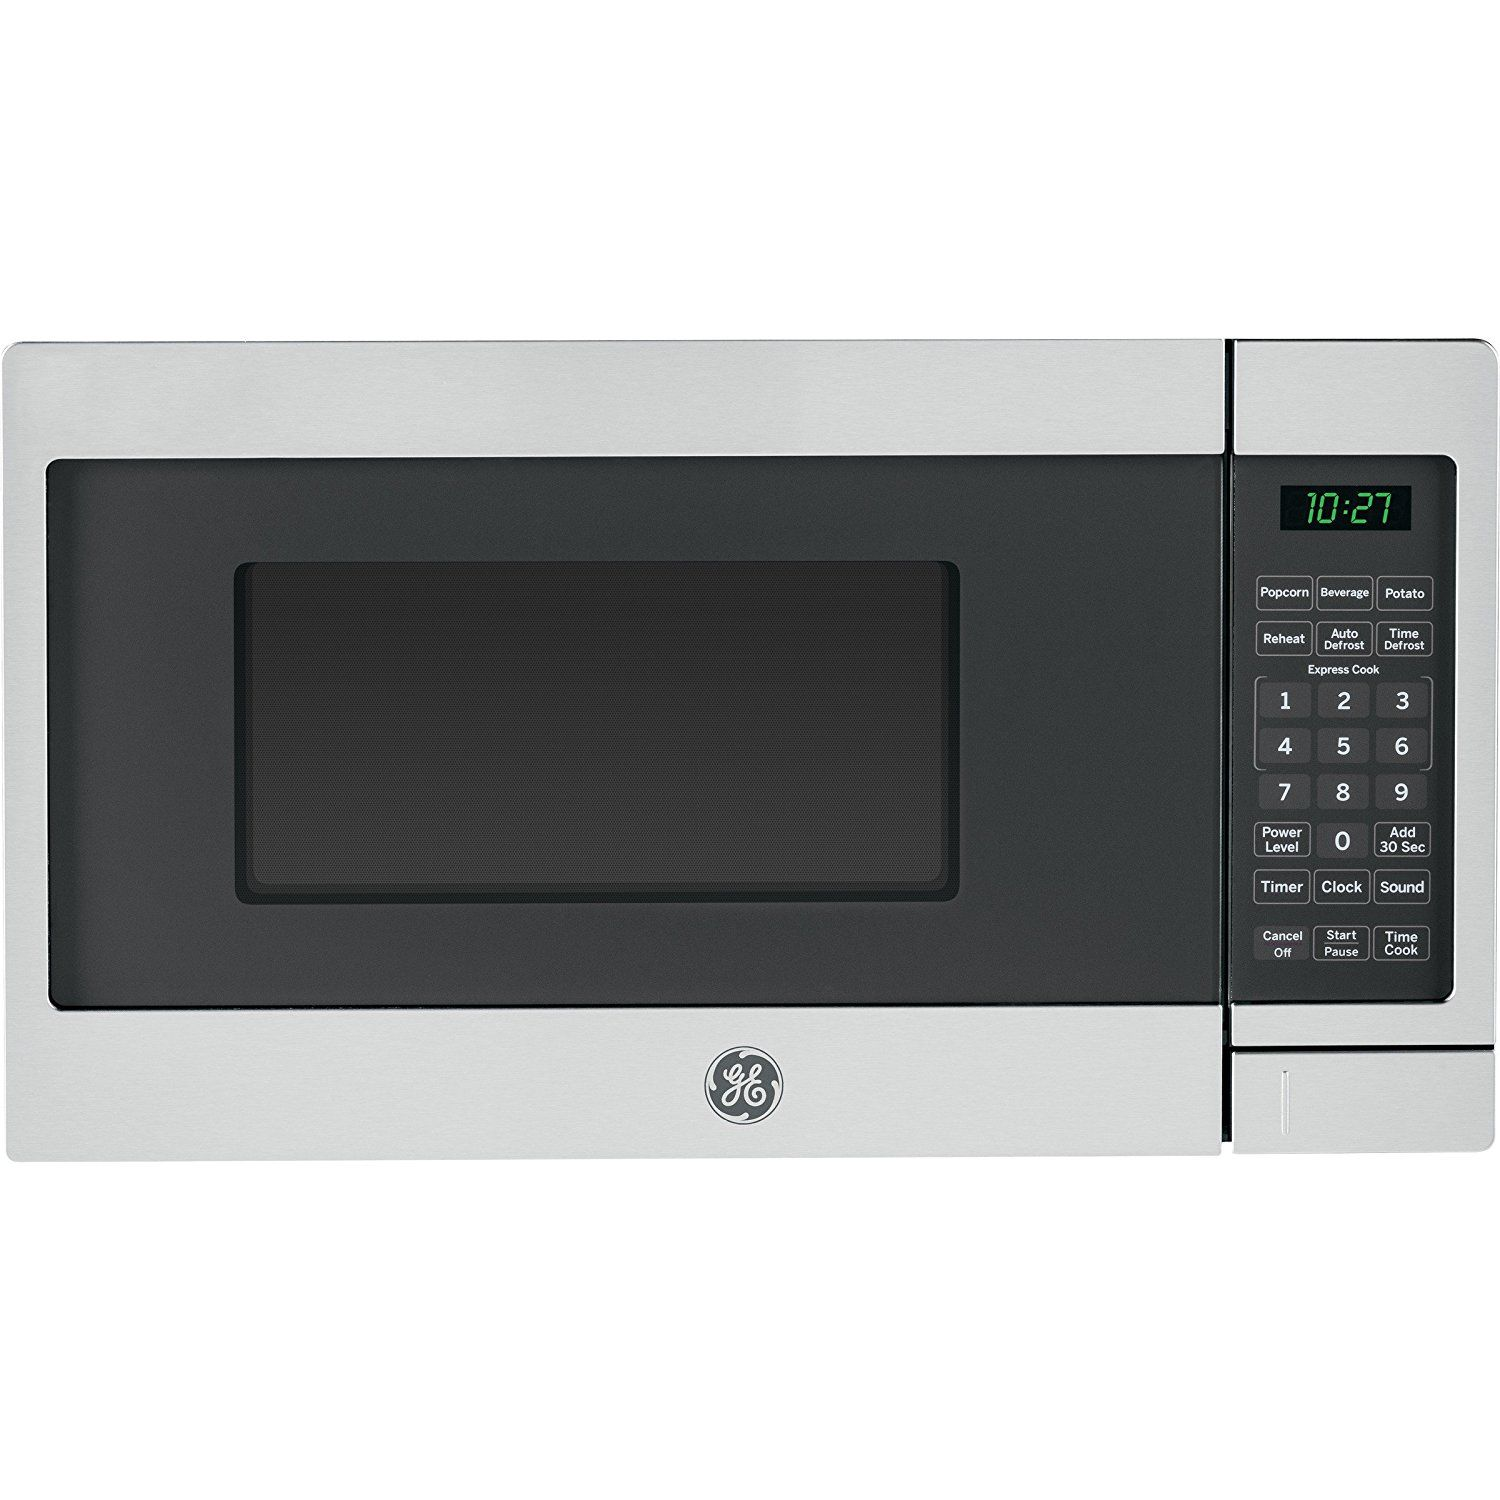 Ge Jes1072shss 0 7 Cu Ft Capacity Countertop Microwave Oven With Auto And Time Defro Countertop Microwave Oven Countertop Microwave Stainless Steel Microwave